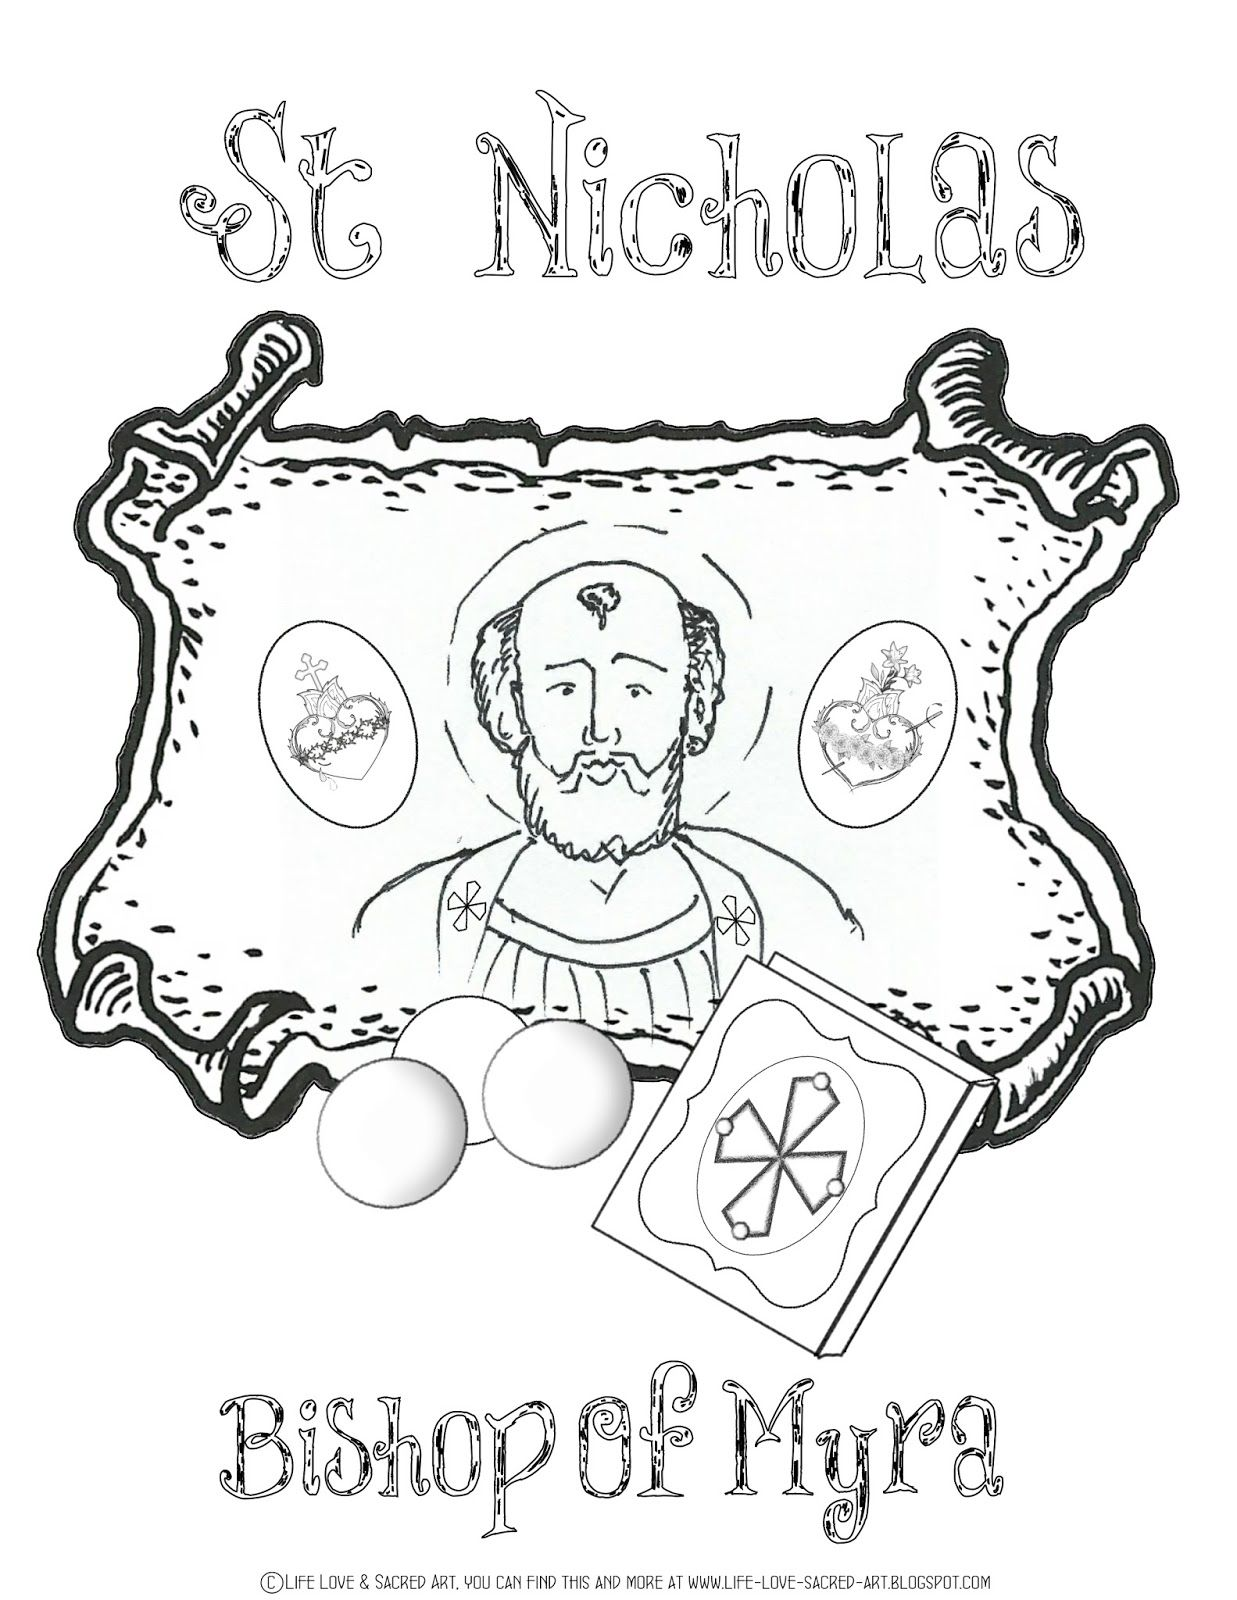 Nicholas st Free coloring pages pictures